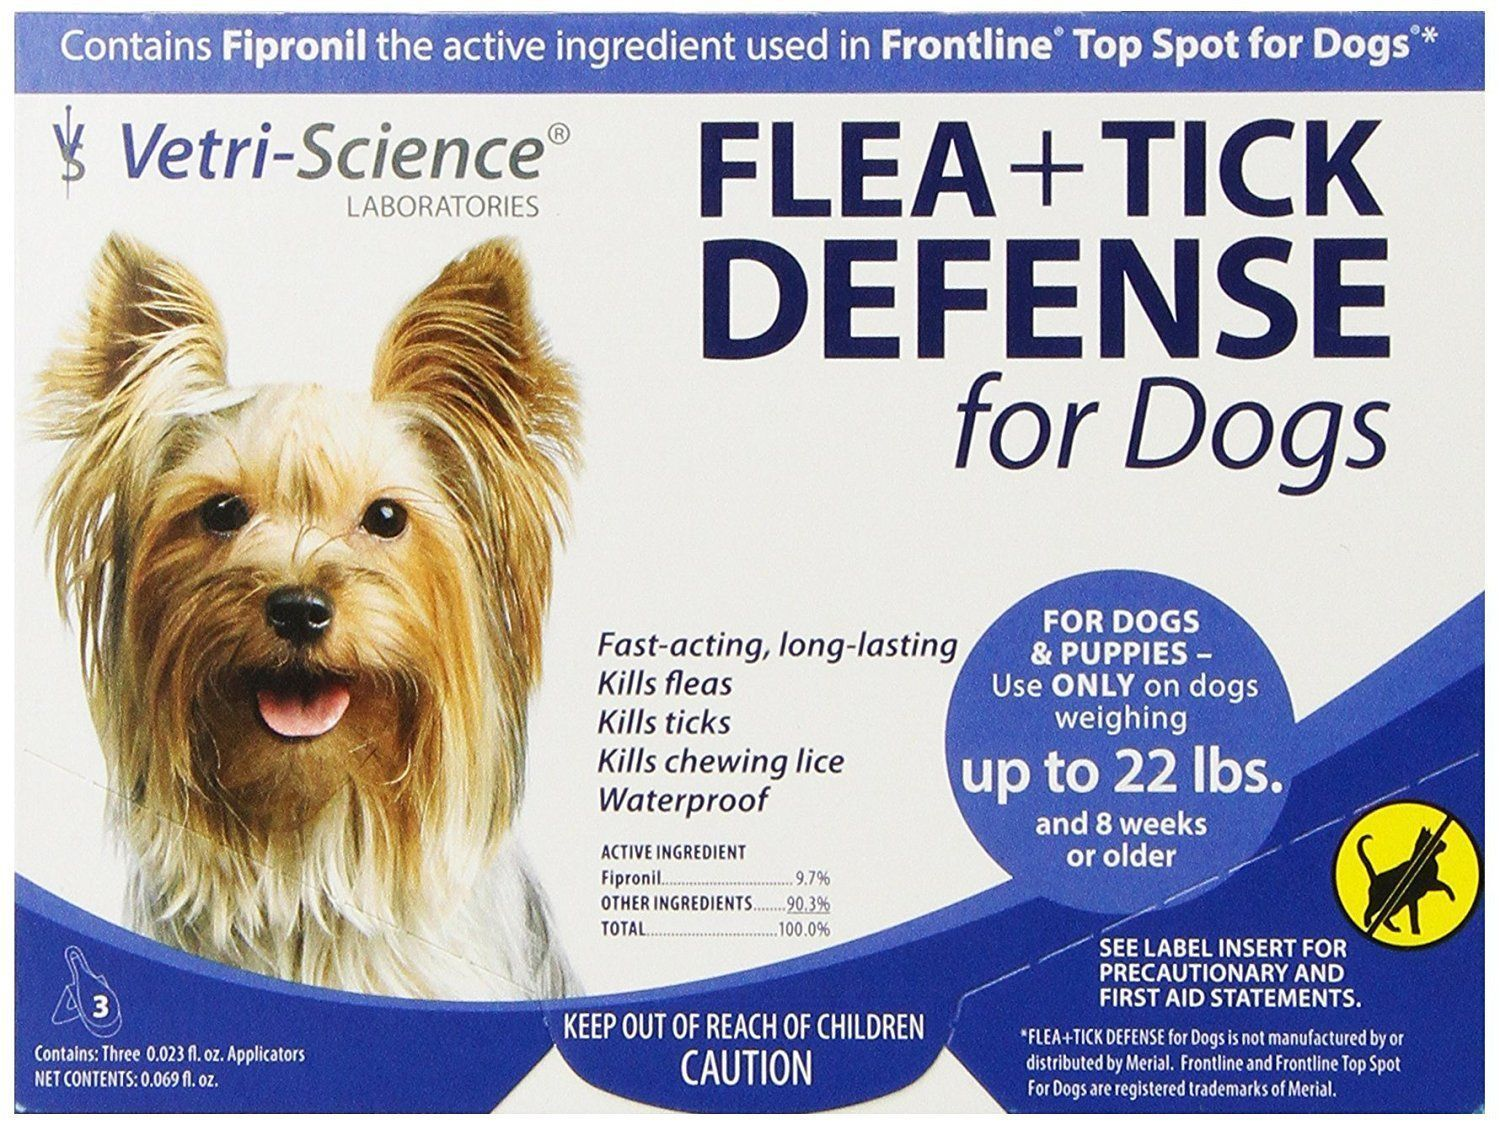 VETRI SCIENCE FLEA +TICK DEFENSE FOR DOGS- FIPRONIL TO 22 LBS 3 DOSES